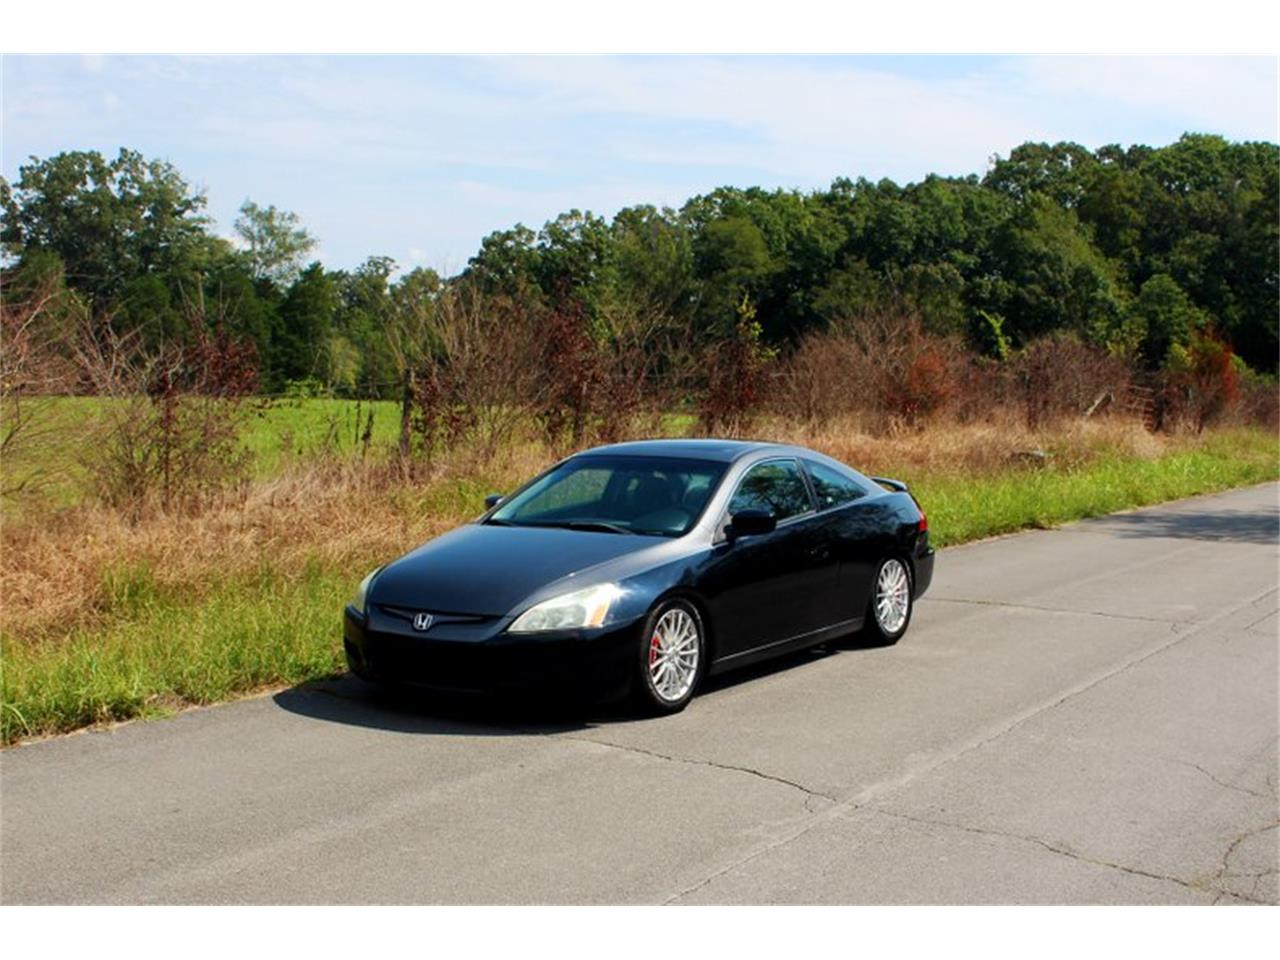 Large Picture of 2004 Honda Accord - $5,995.00 - OH0M